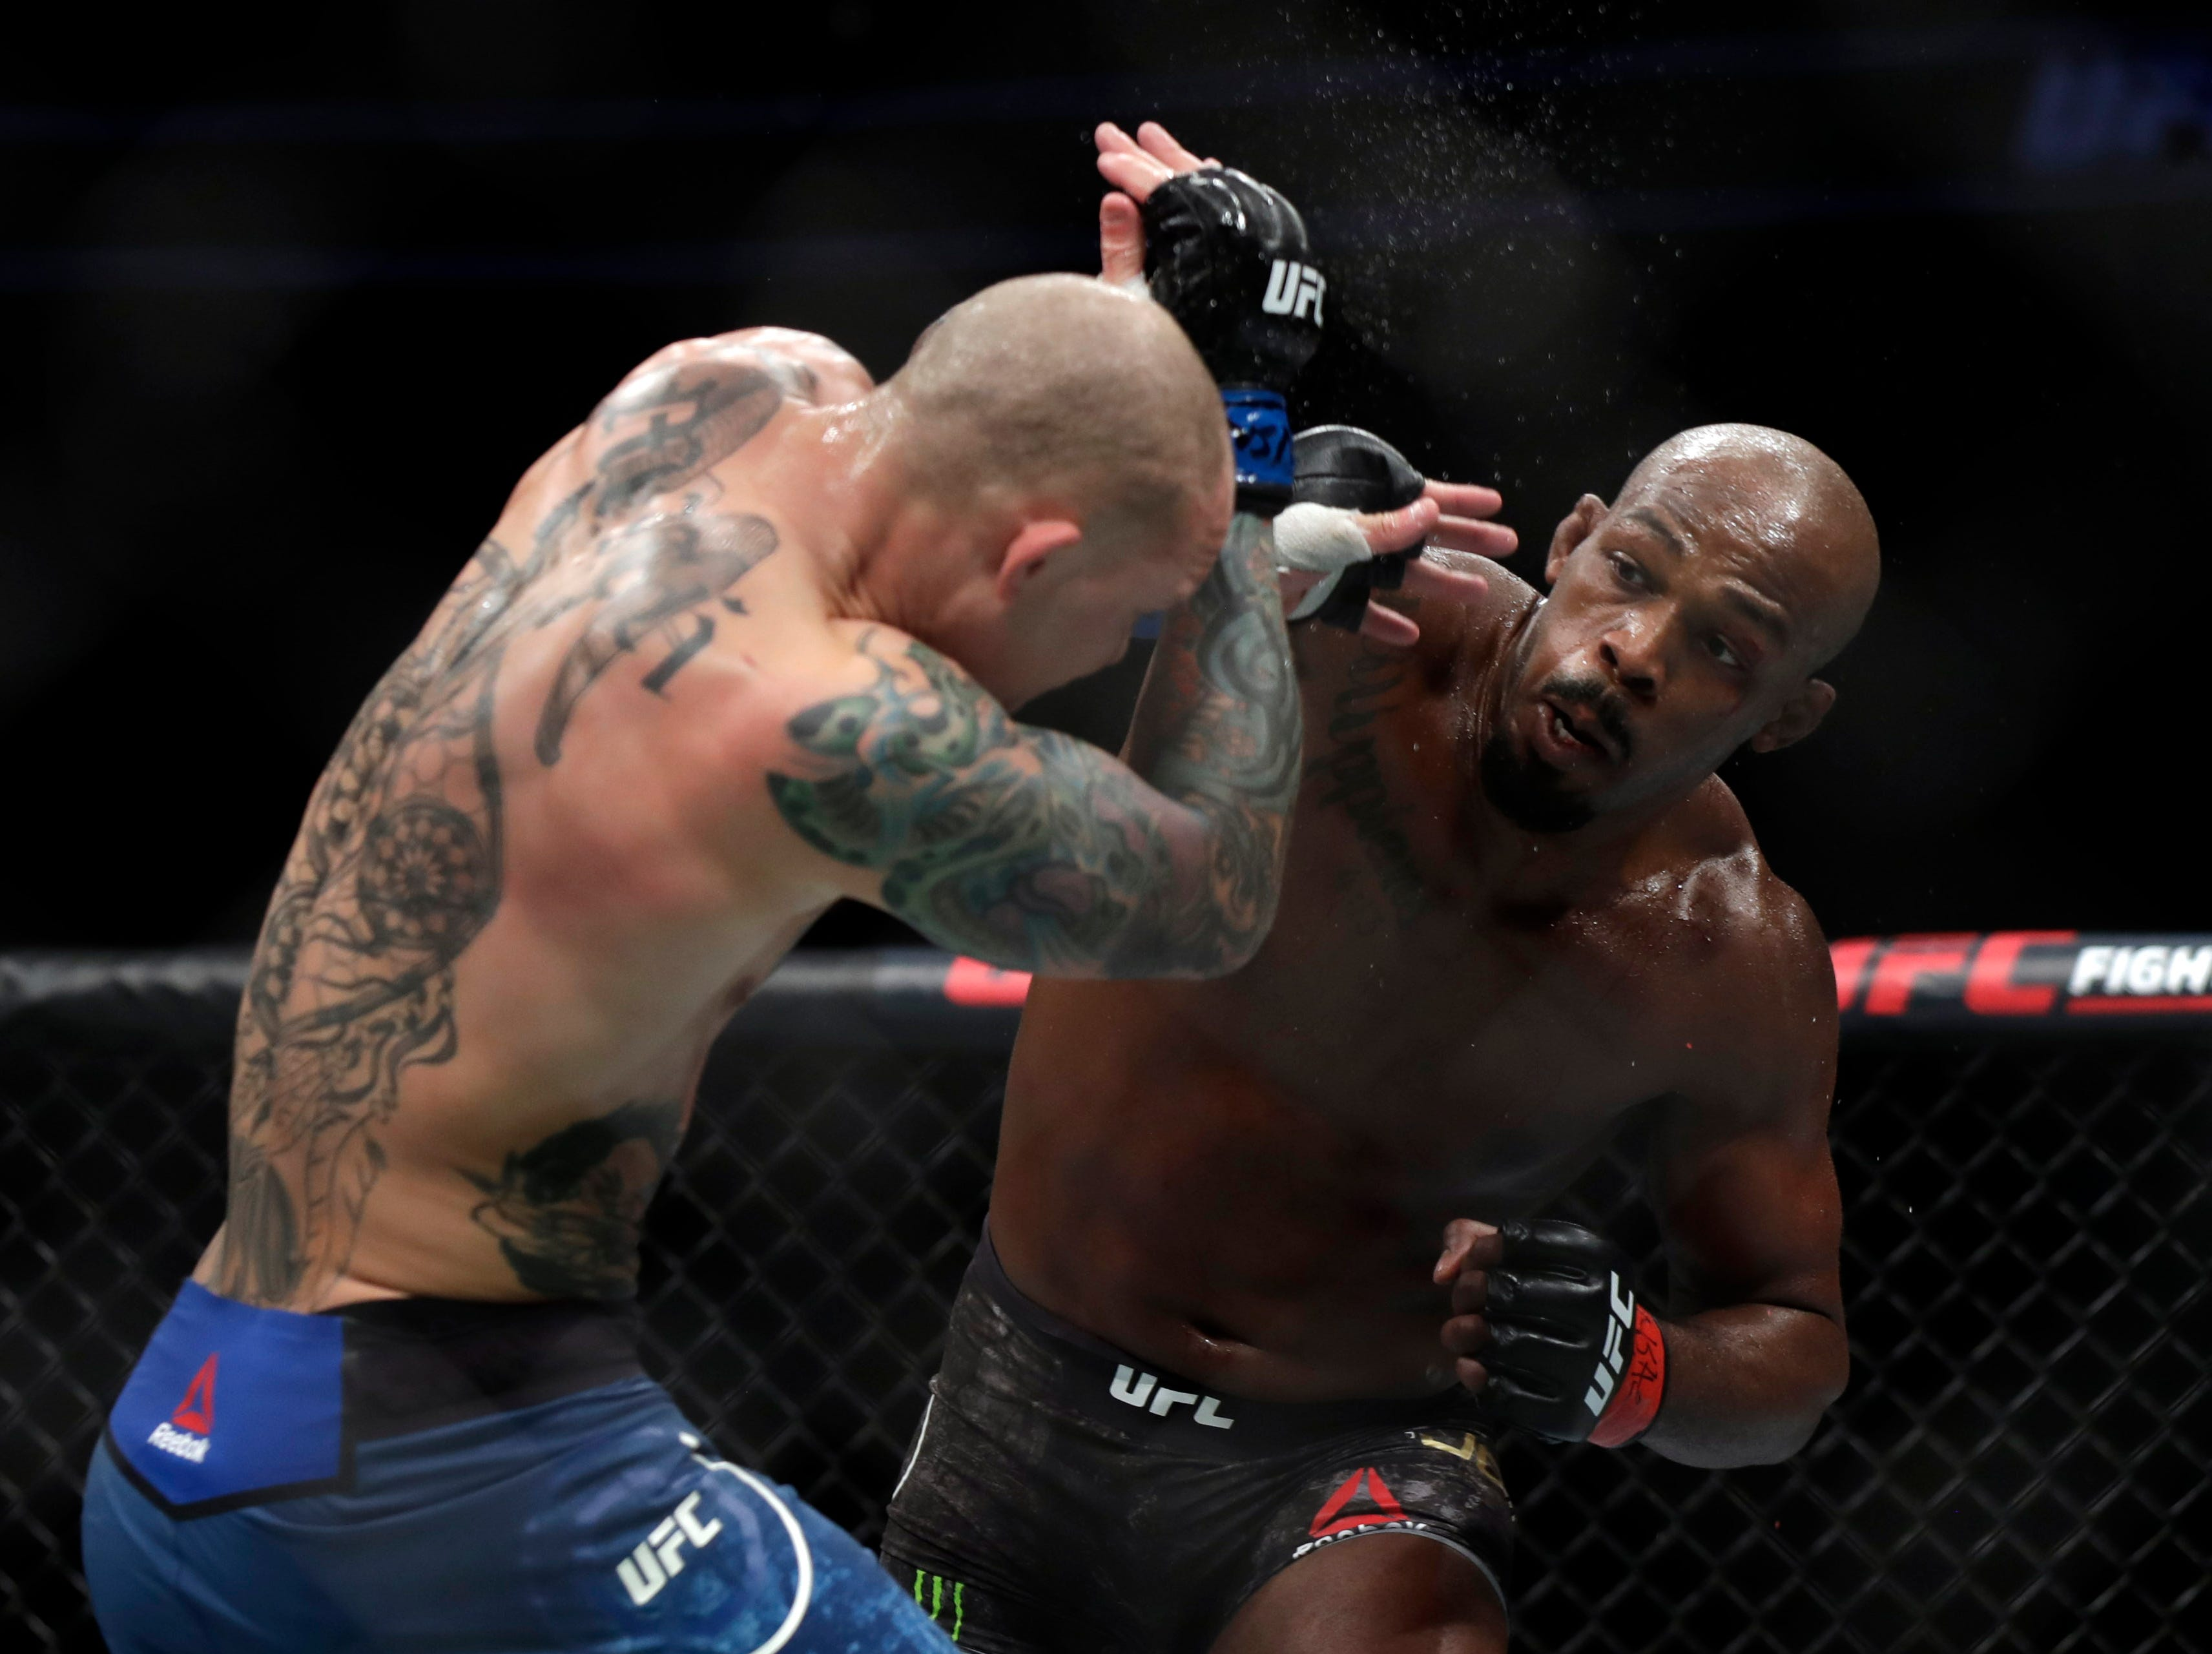 LAS VEGAS, NEVADA - MARCH 02: Jon Jones (R) and Anthony Smith trade punches during their light heavyweight title bout during UFC 235 at T-Mobile Arena on March 02, 2019 in Las Vegas, Nevada. Jones won by unanimous decision.  (Photo by Isaac Brekken/Getty Images )